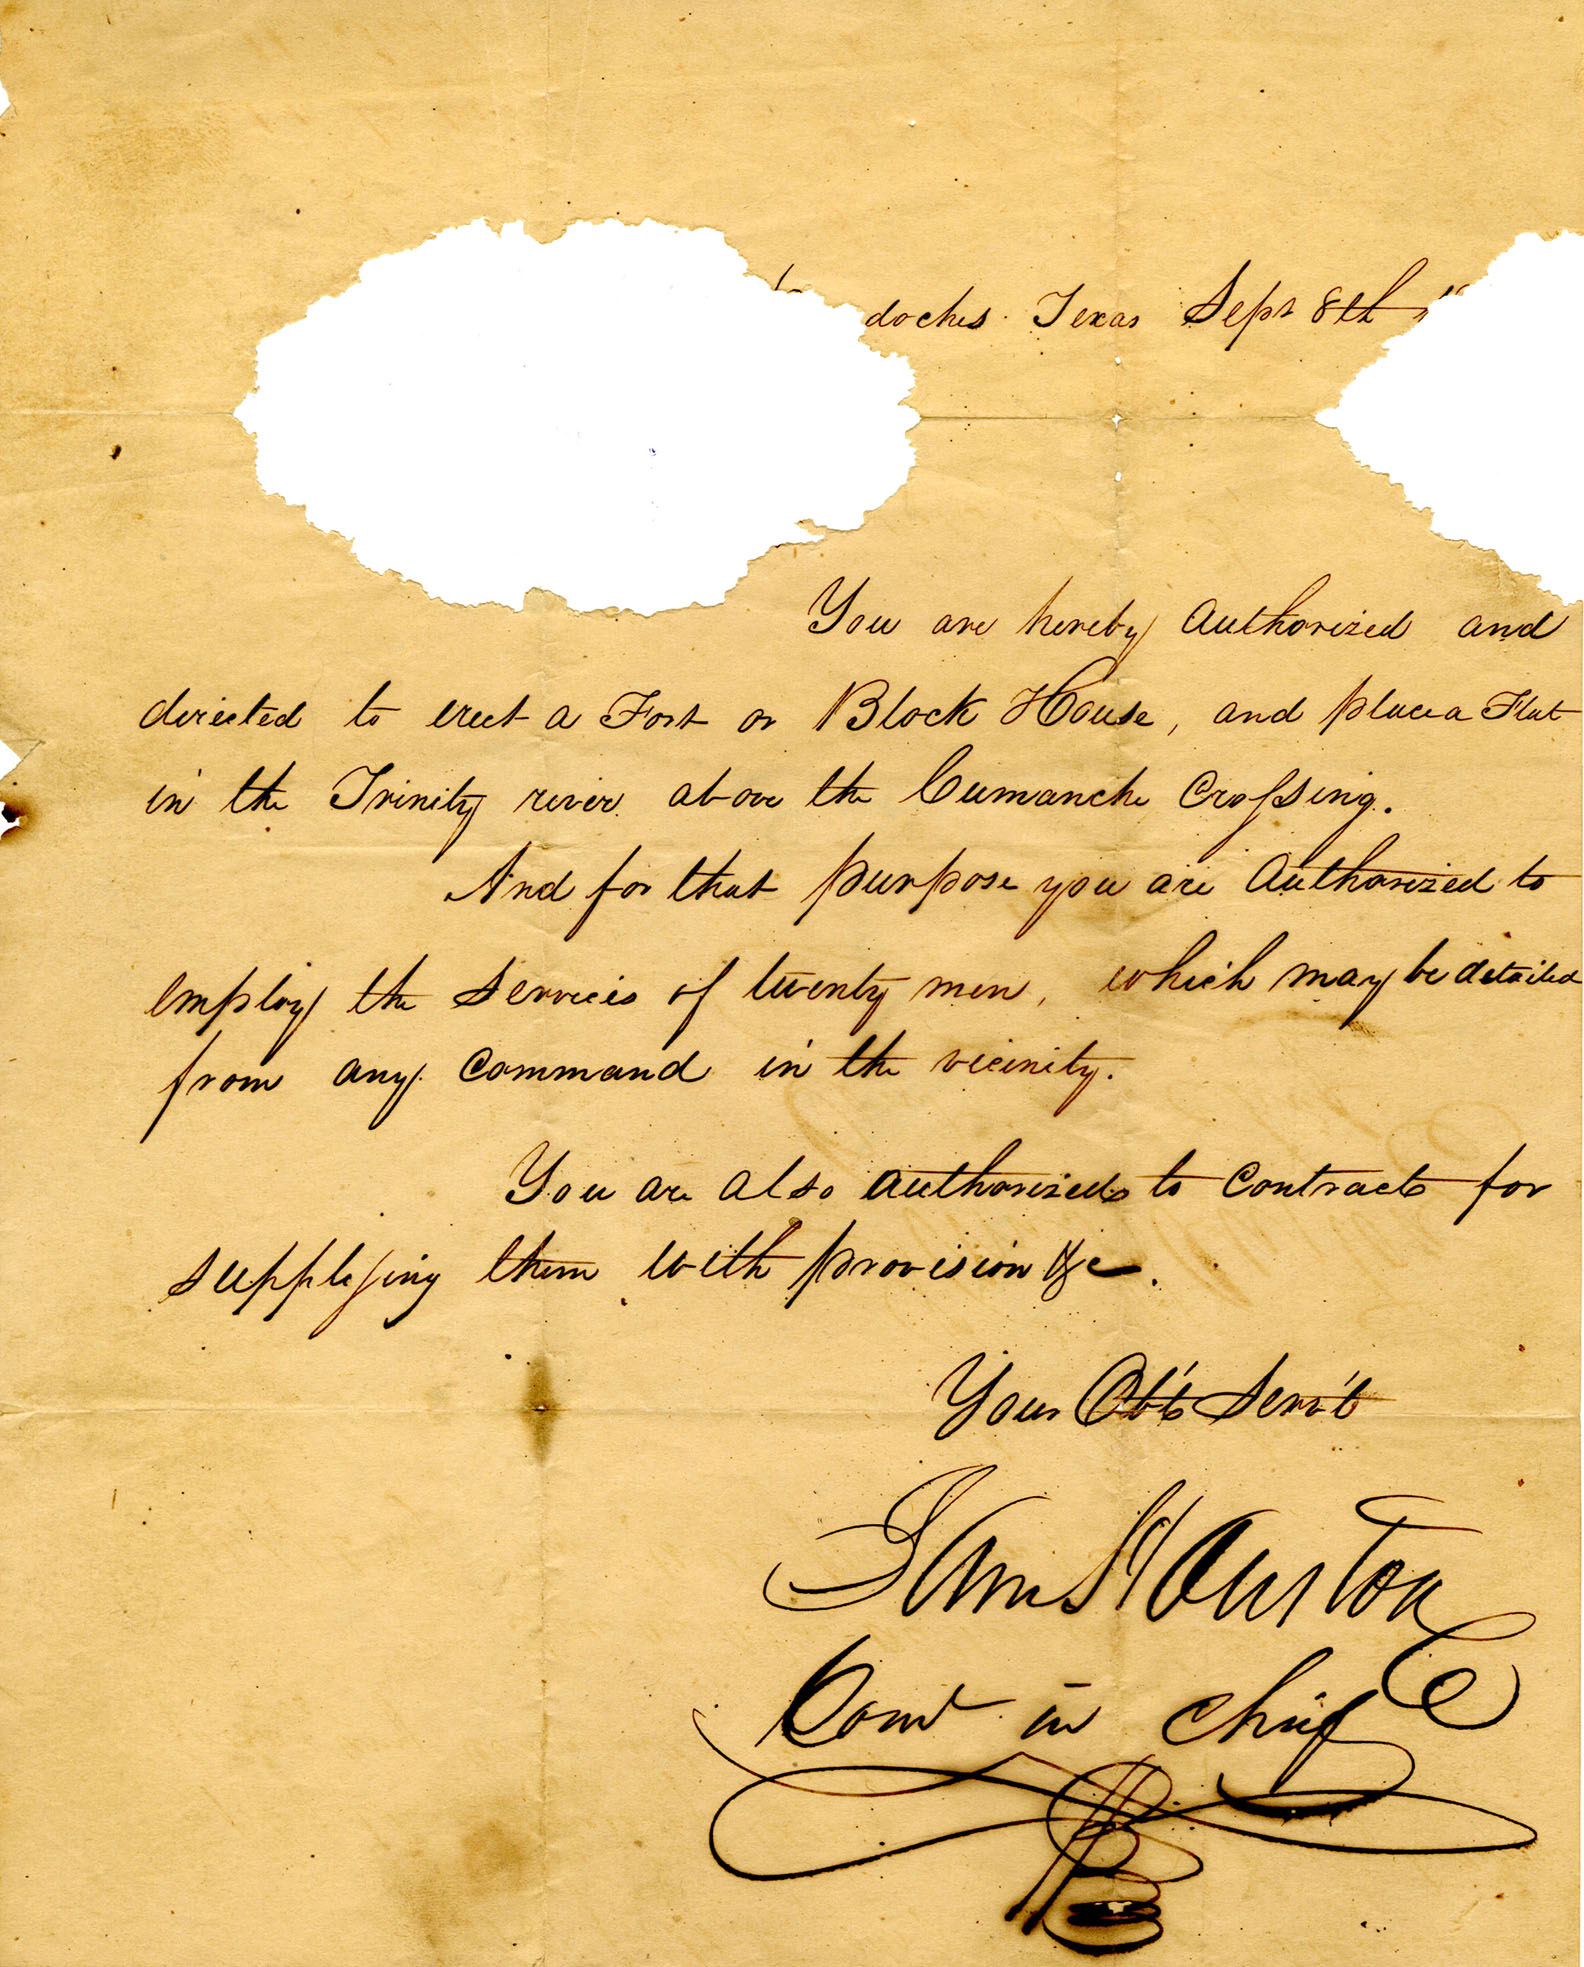 Letter from Sam Houston to Daniel Parker, 1836